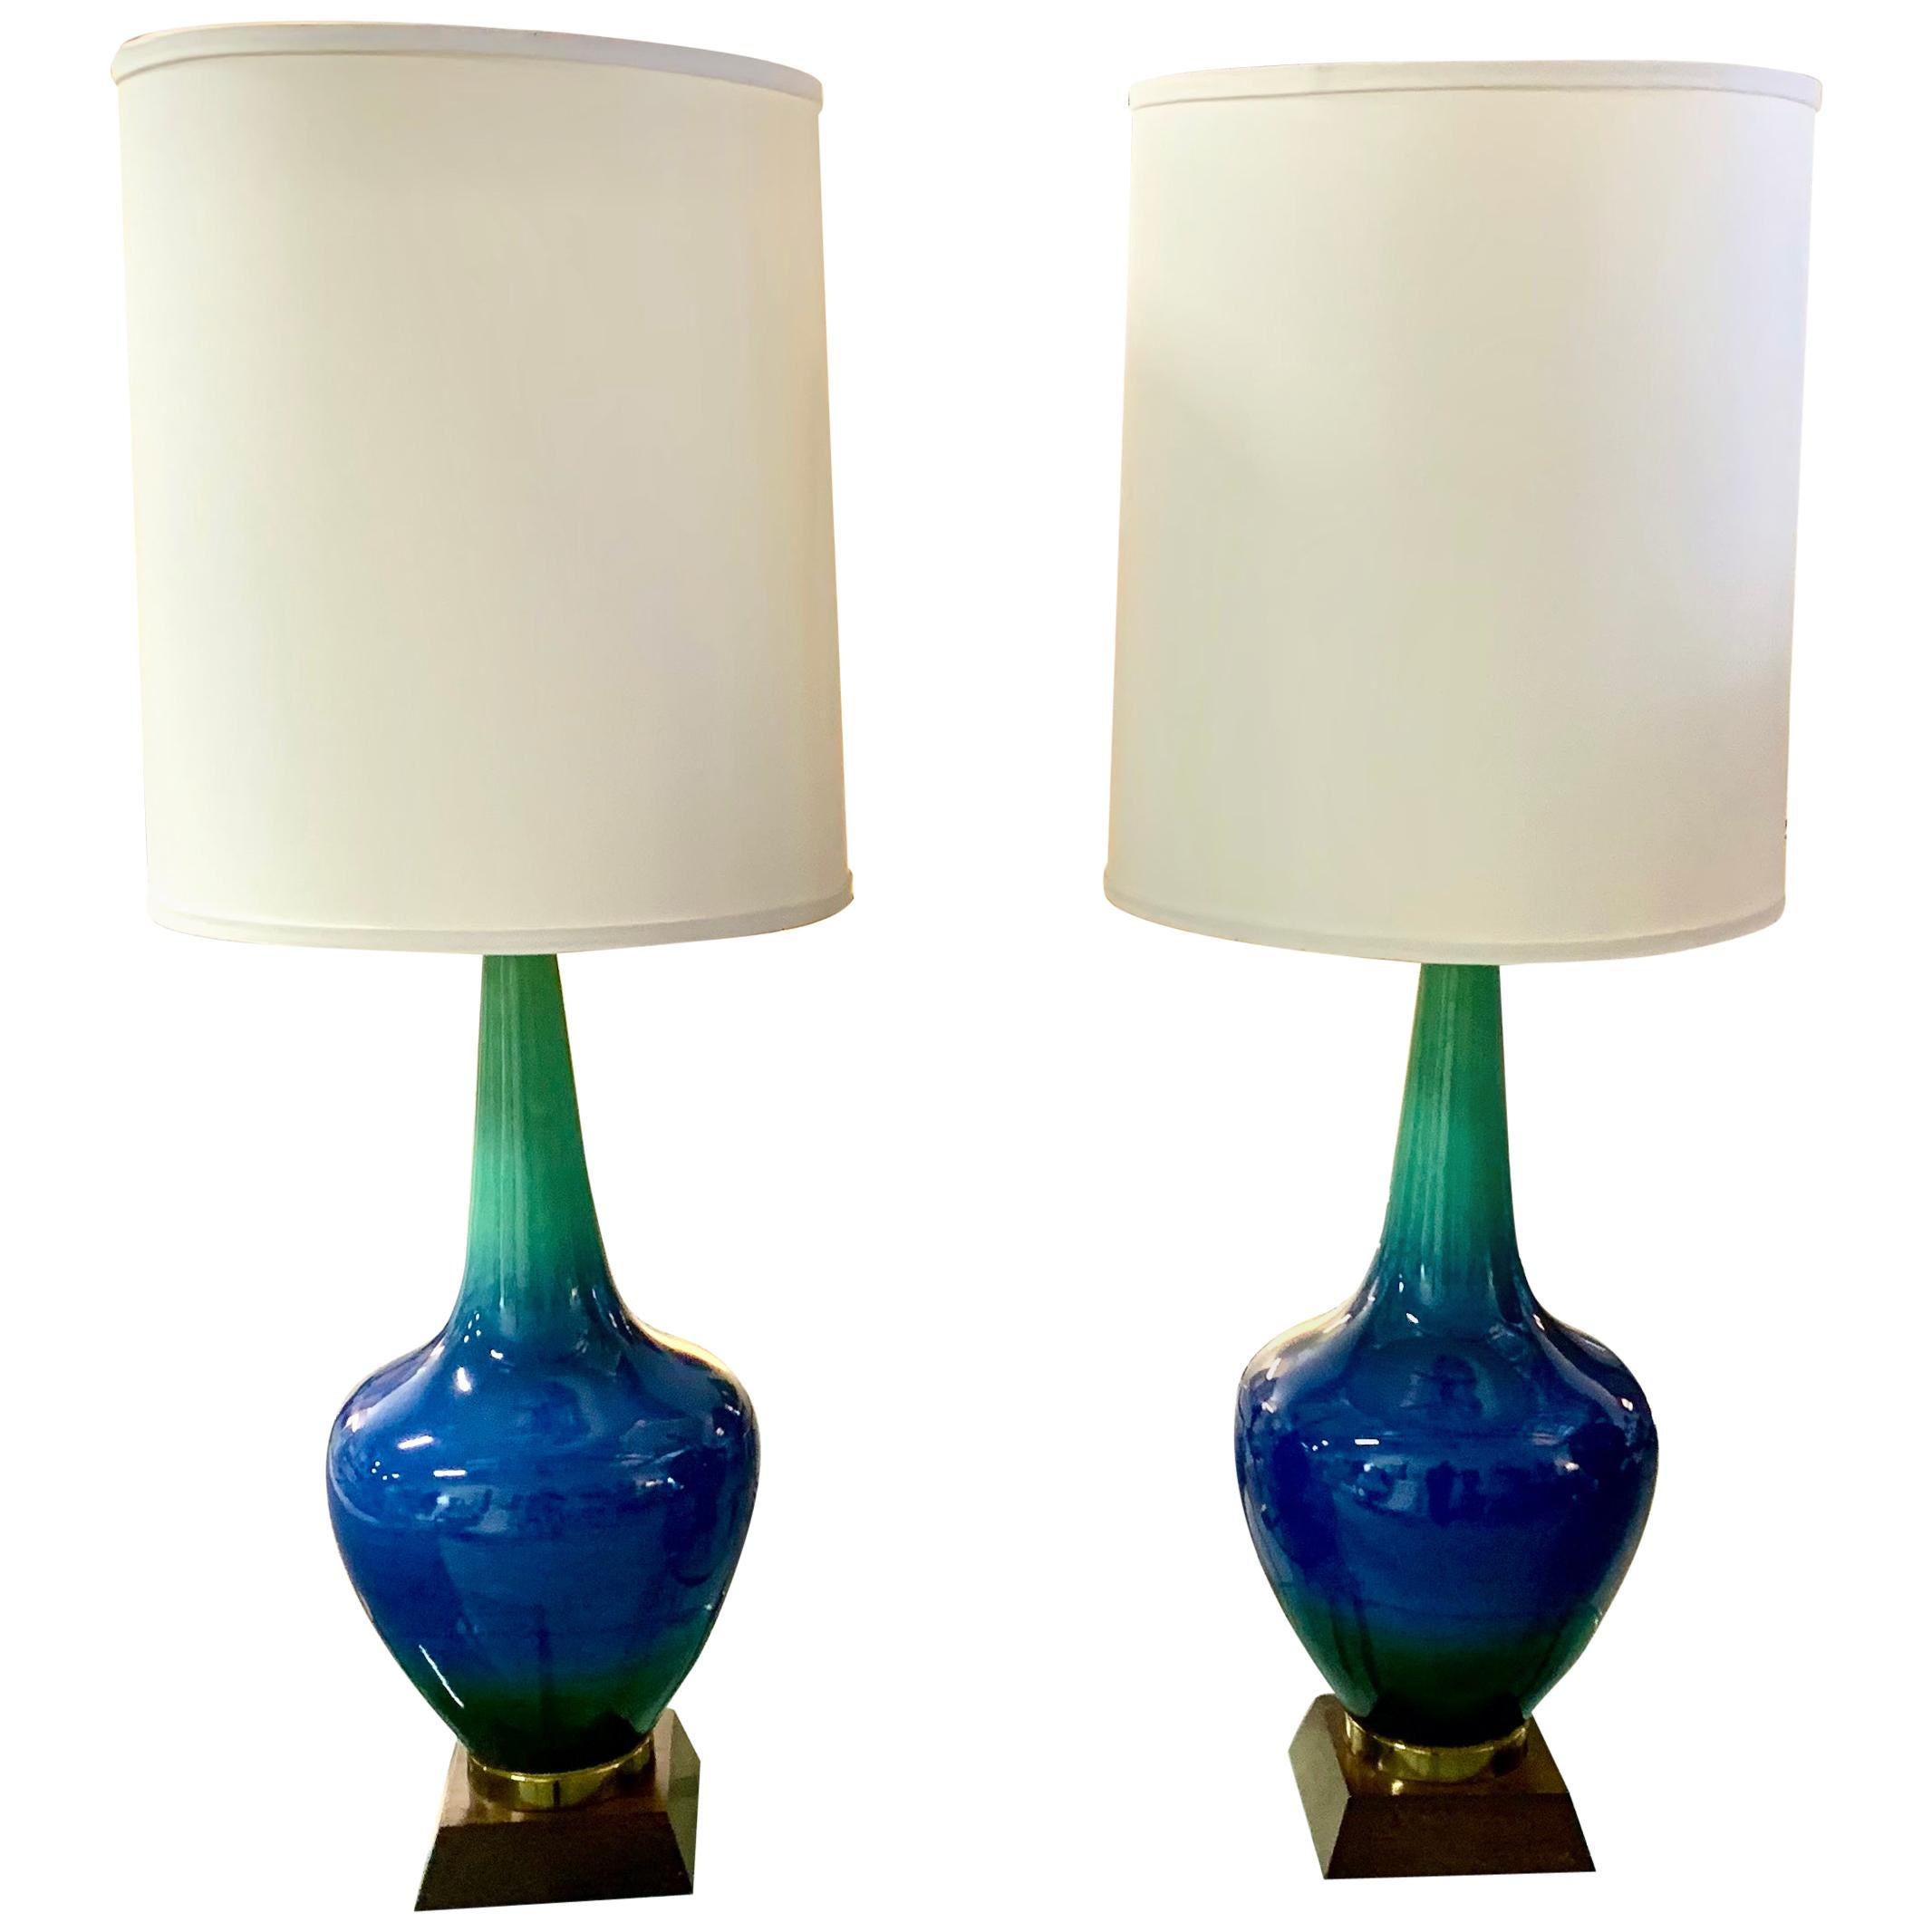 Pair of Vintage Glazed Ceramic Lamps